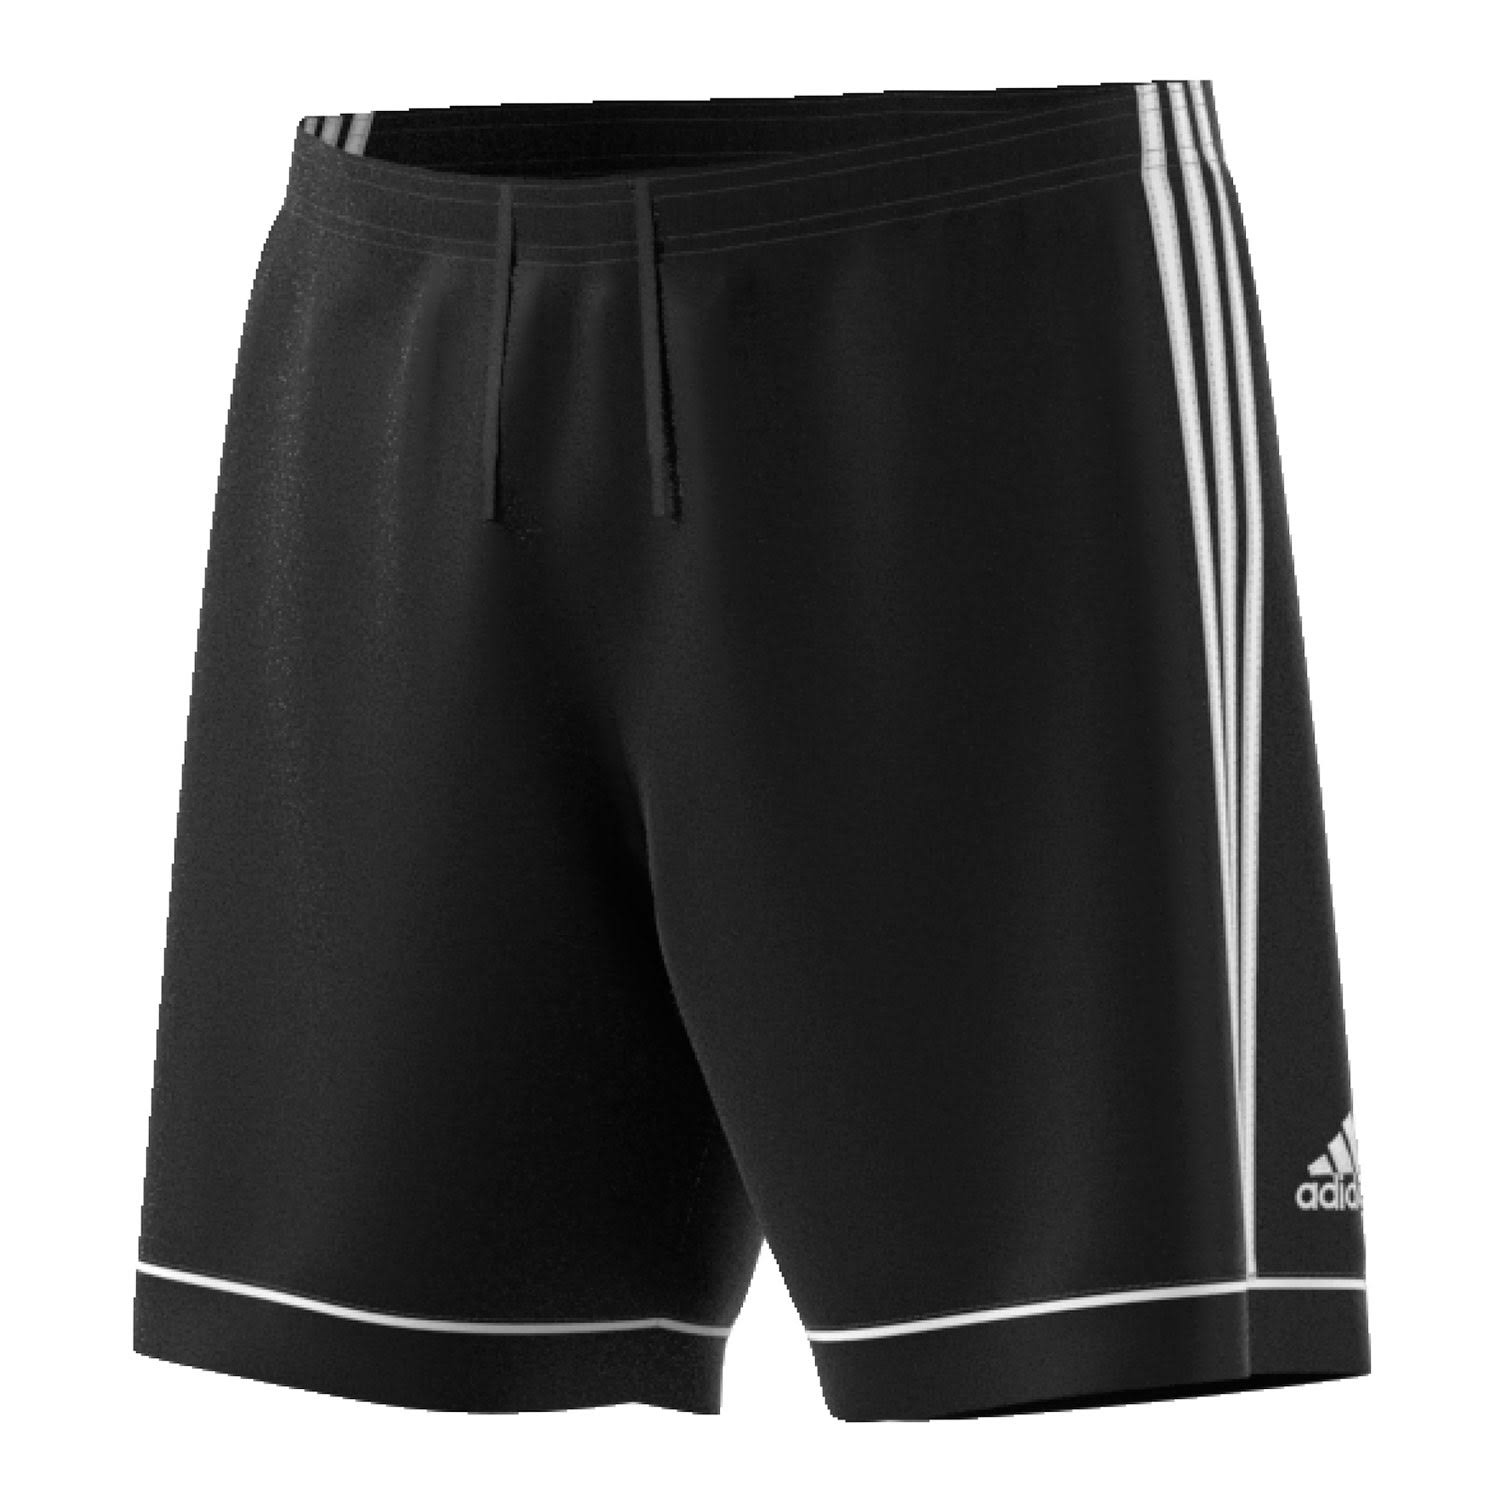 Adidas Men's Squadra 17 Shorts - Black, L